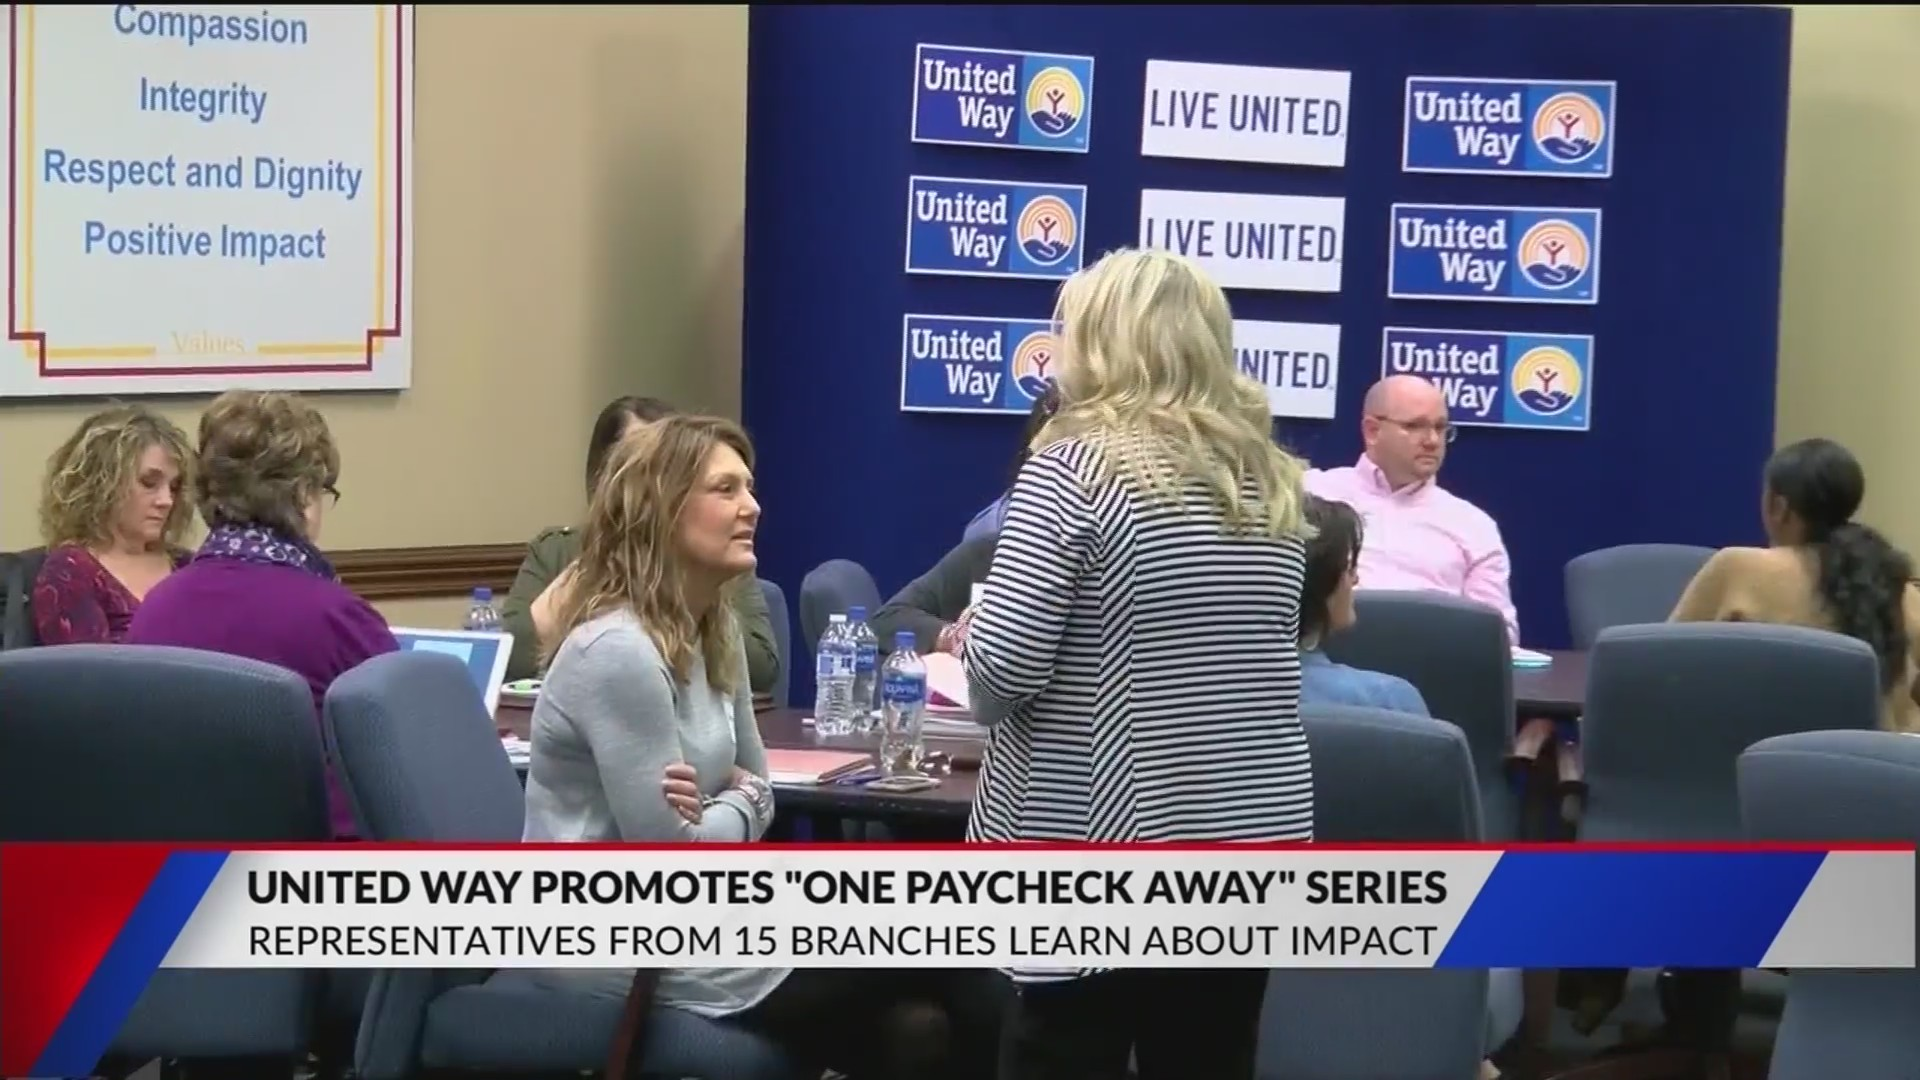 NBC 10/FOX 1 helps United Way to promote 'One Paycheck Away' series with other chapters in the south